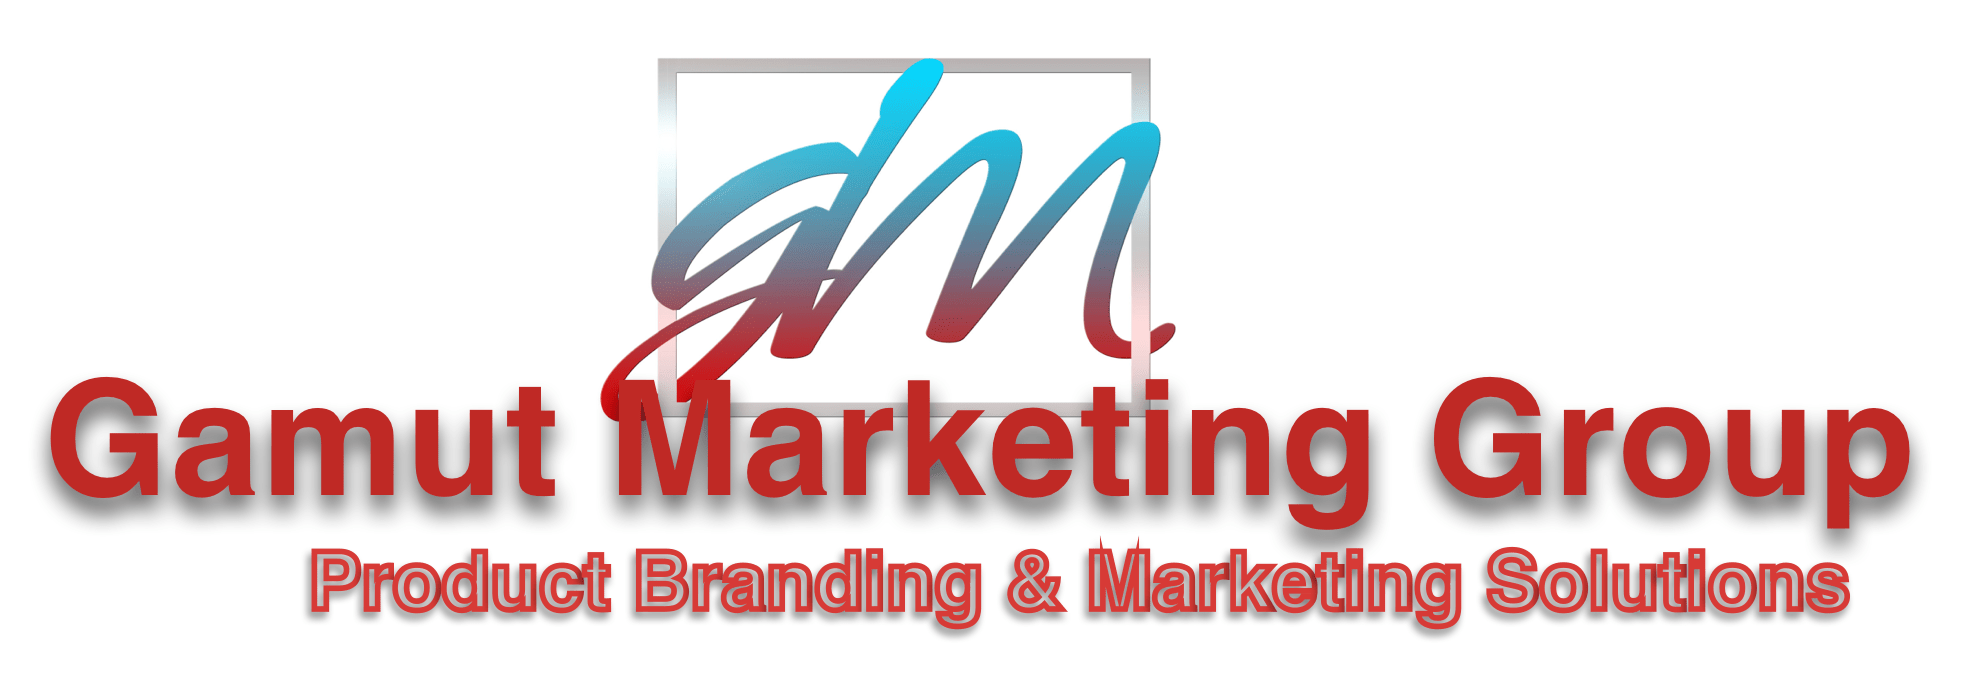 Gamut Marketing Group